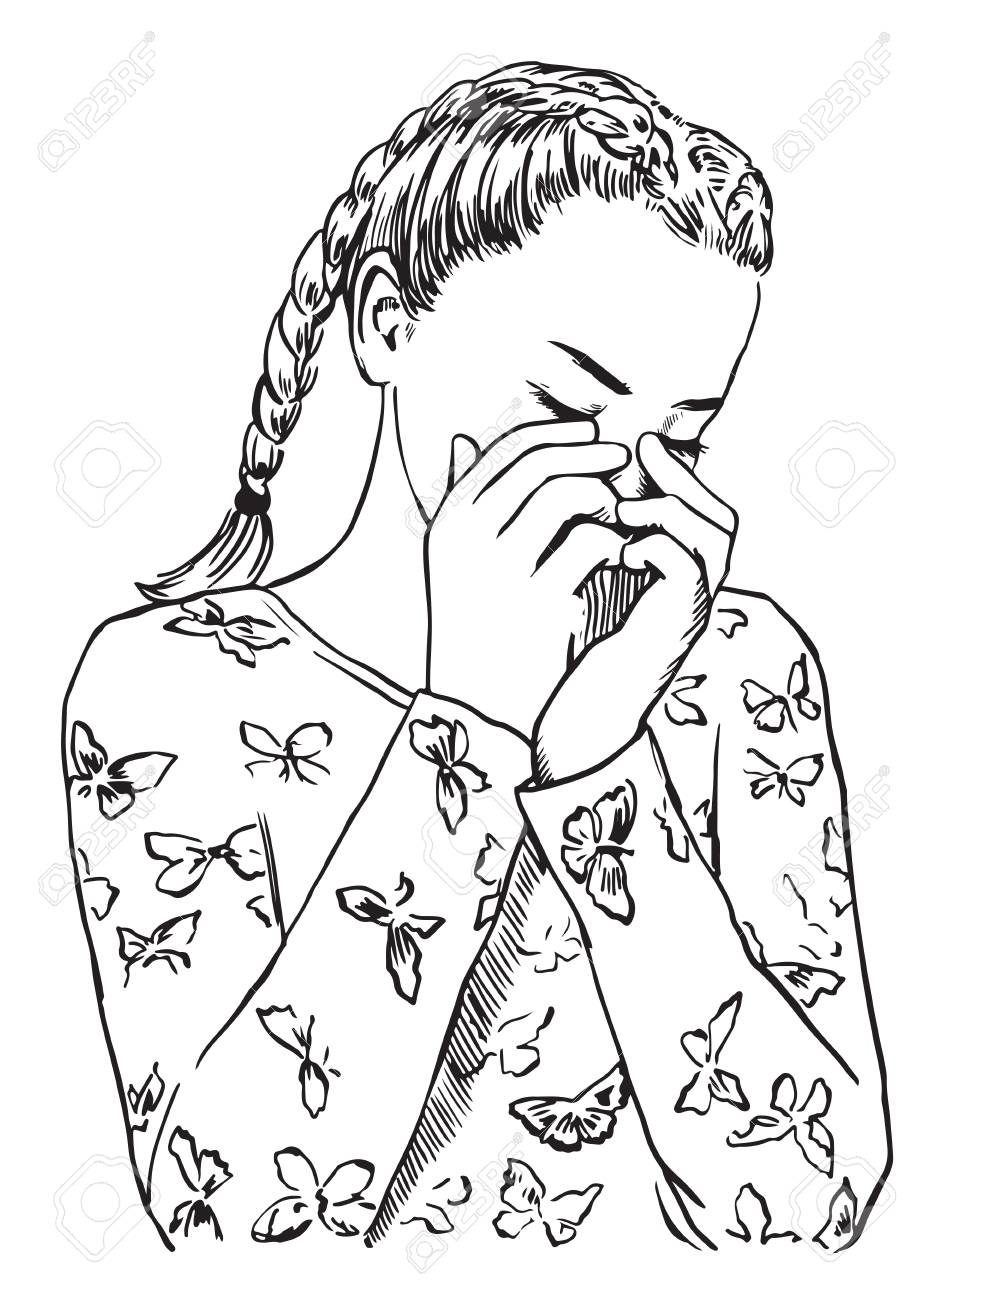 hight resolution of line drawing girl covering face wiring diagrams u2022young cute girl in sleepwear is crying covering